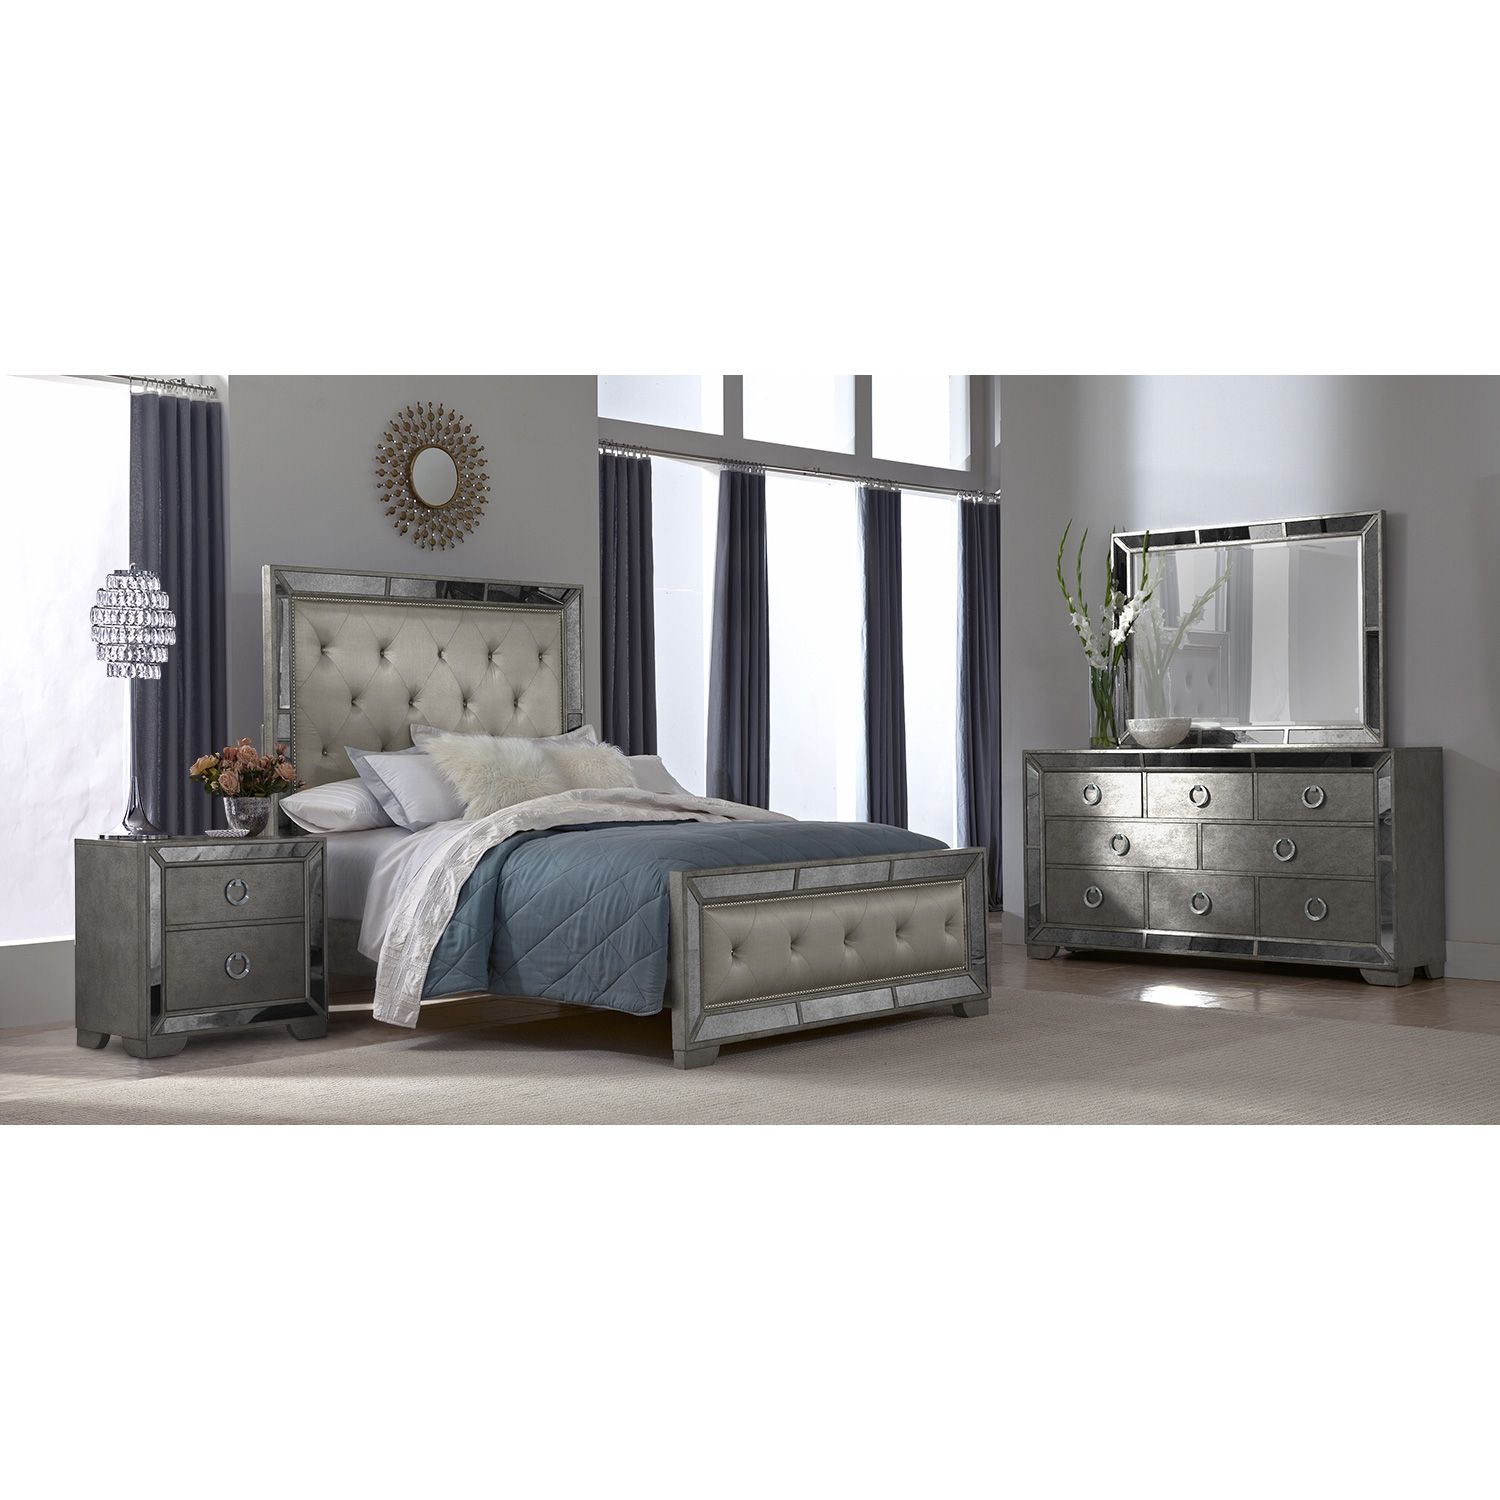 city furniture bedroom set. King Bedroom  Value City Furniture Angelina 6 Pc American Signature Home